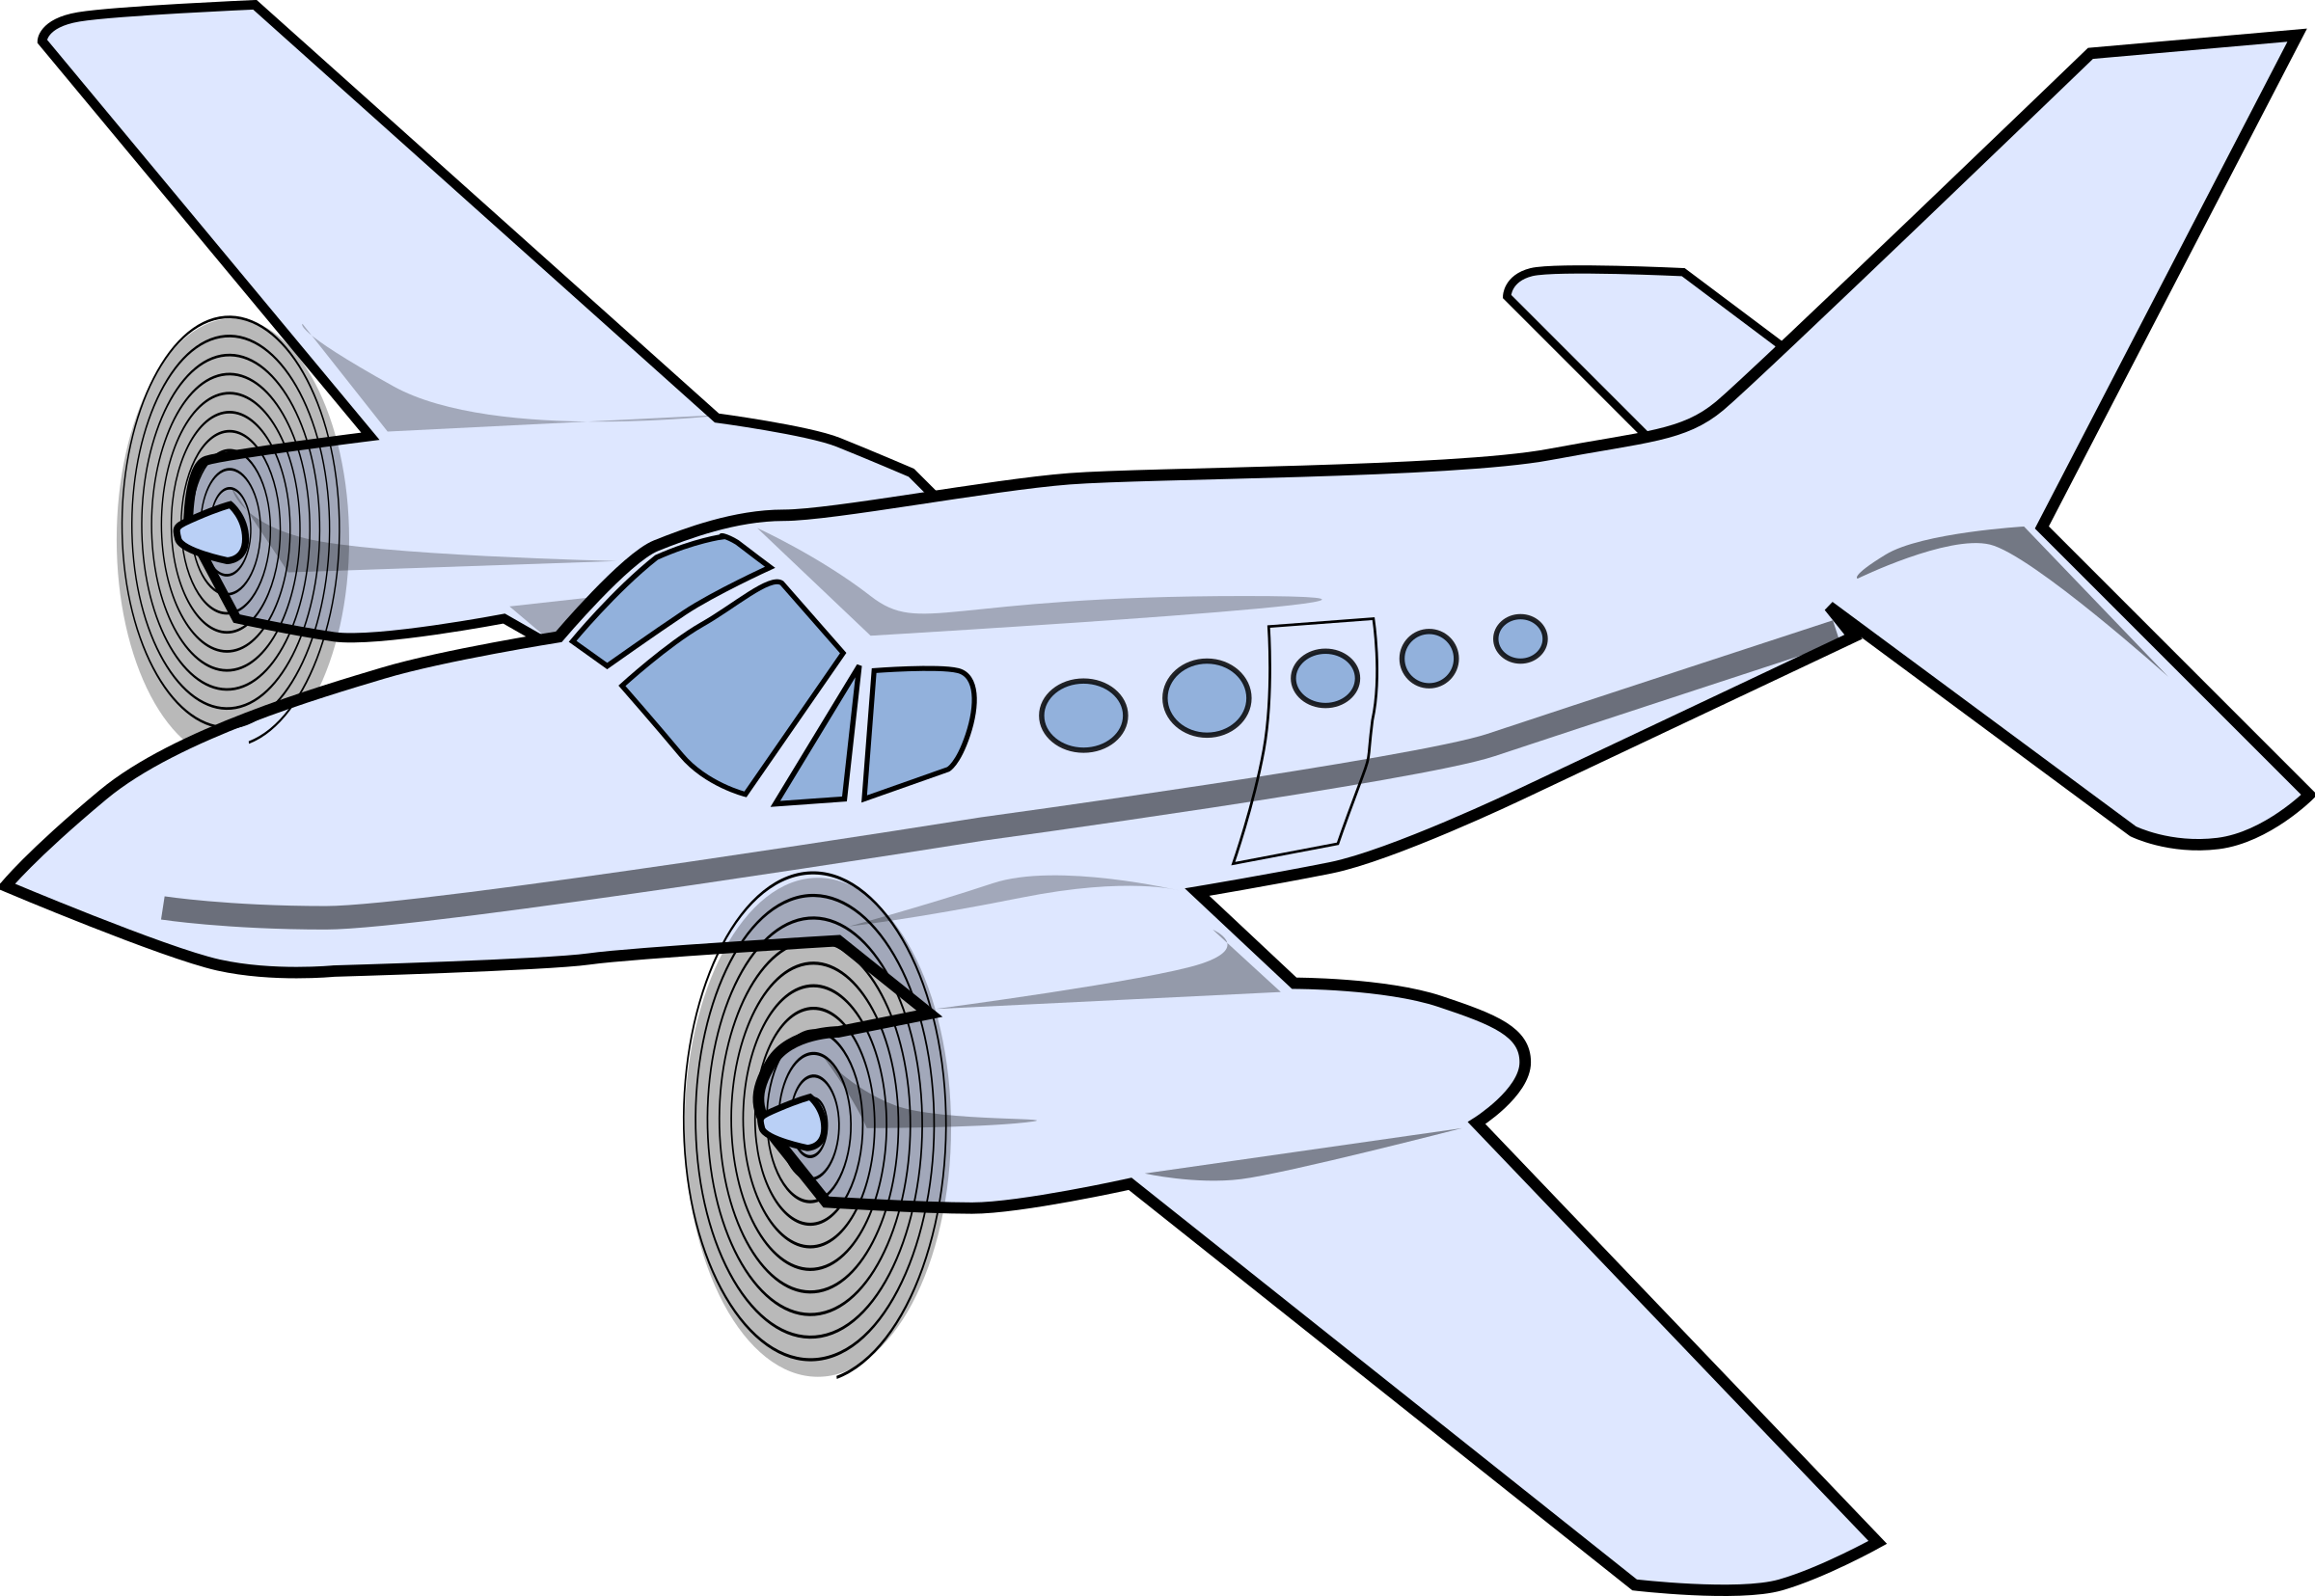 Plane svg animated. Cessna icons png free